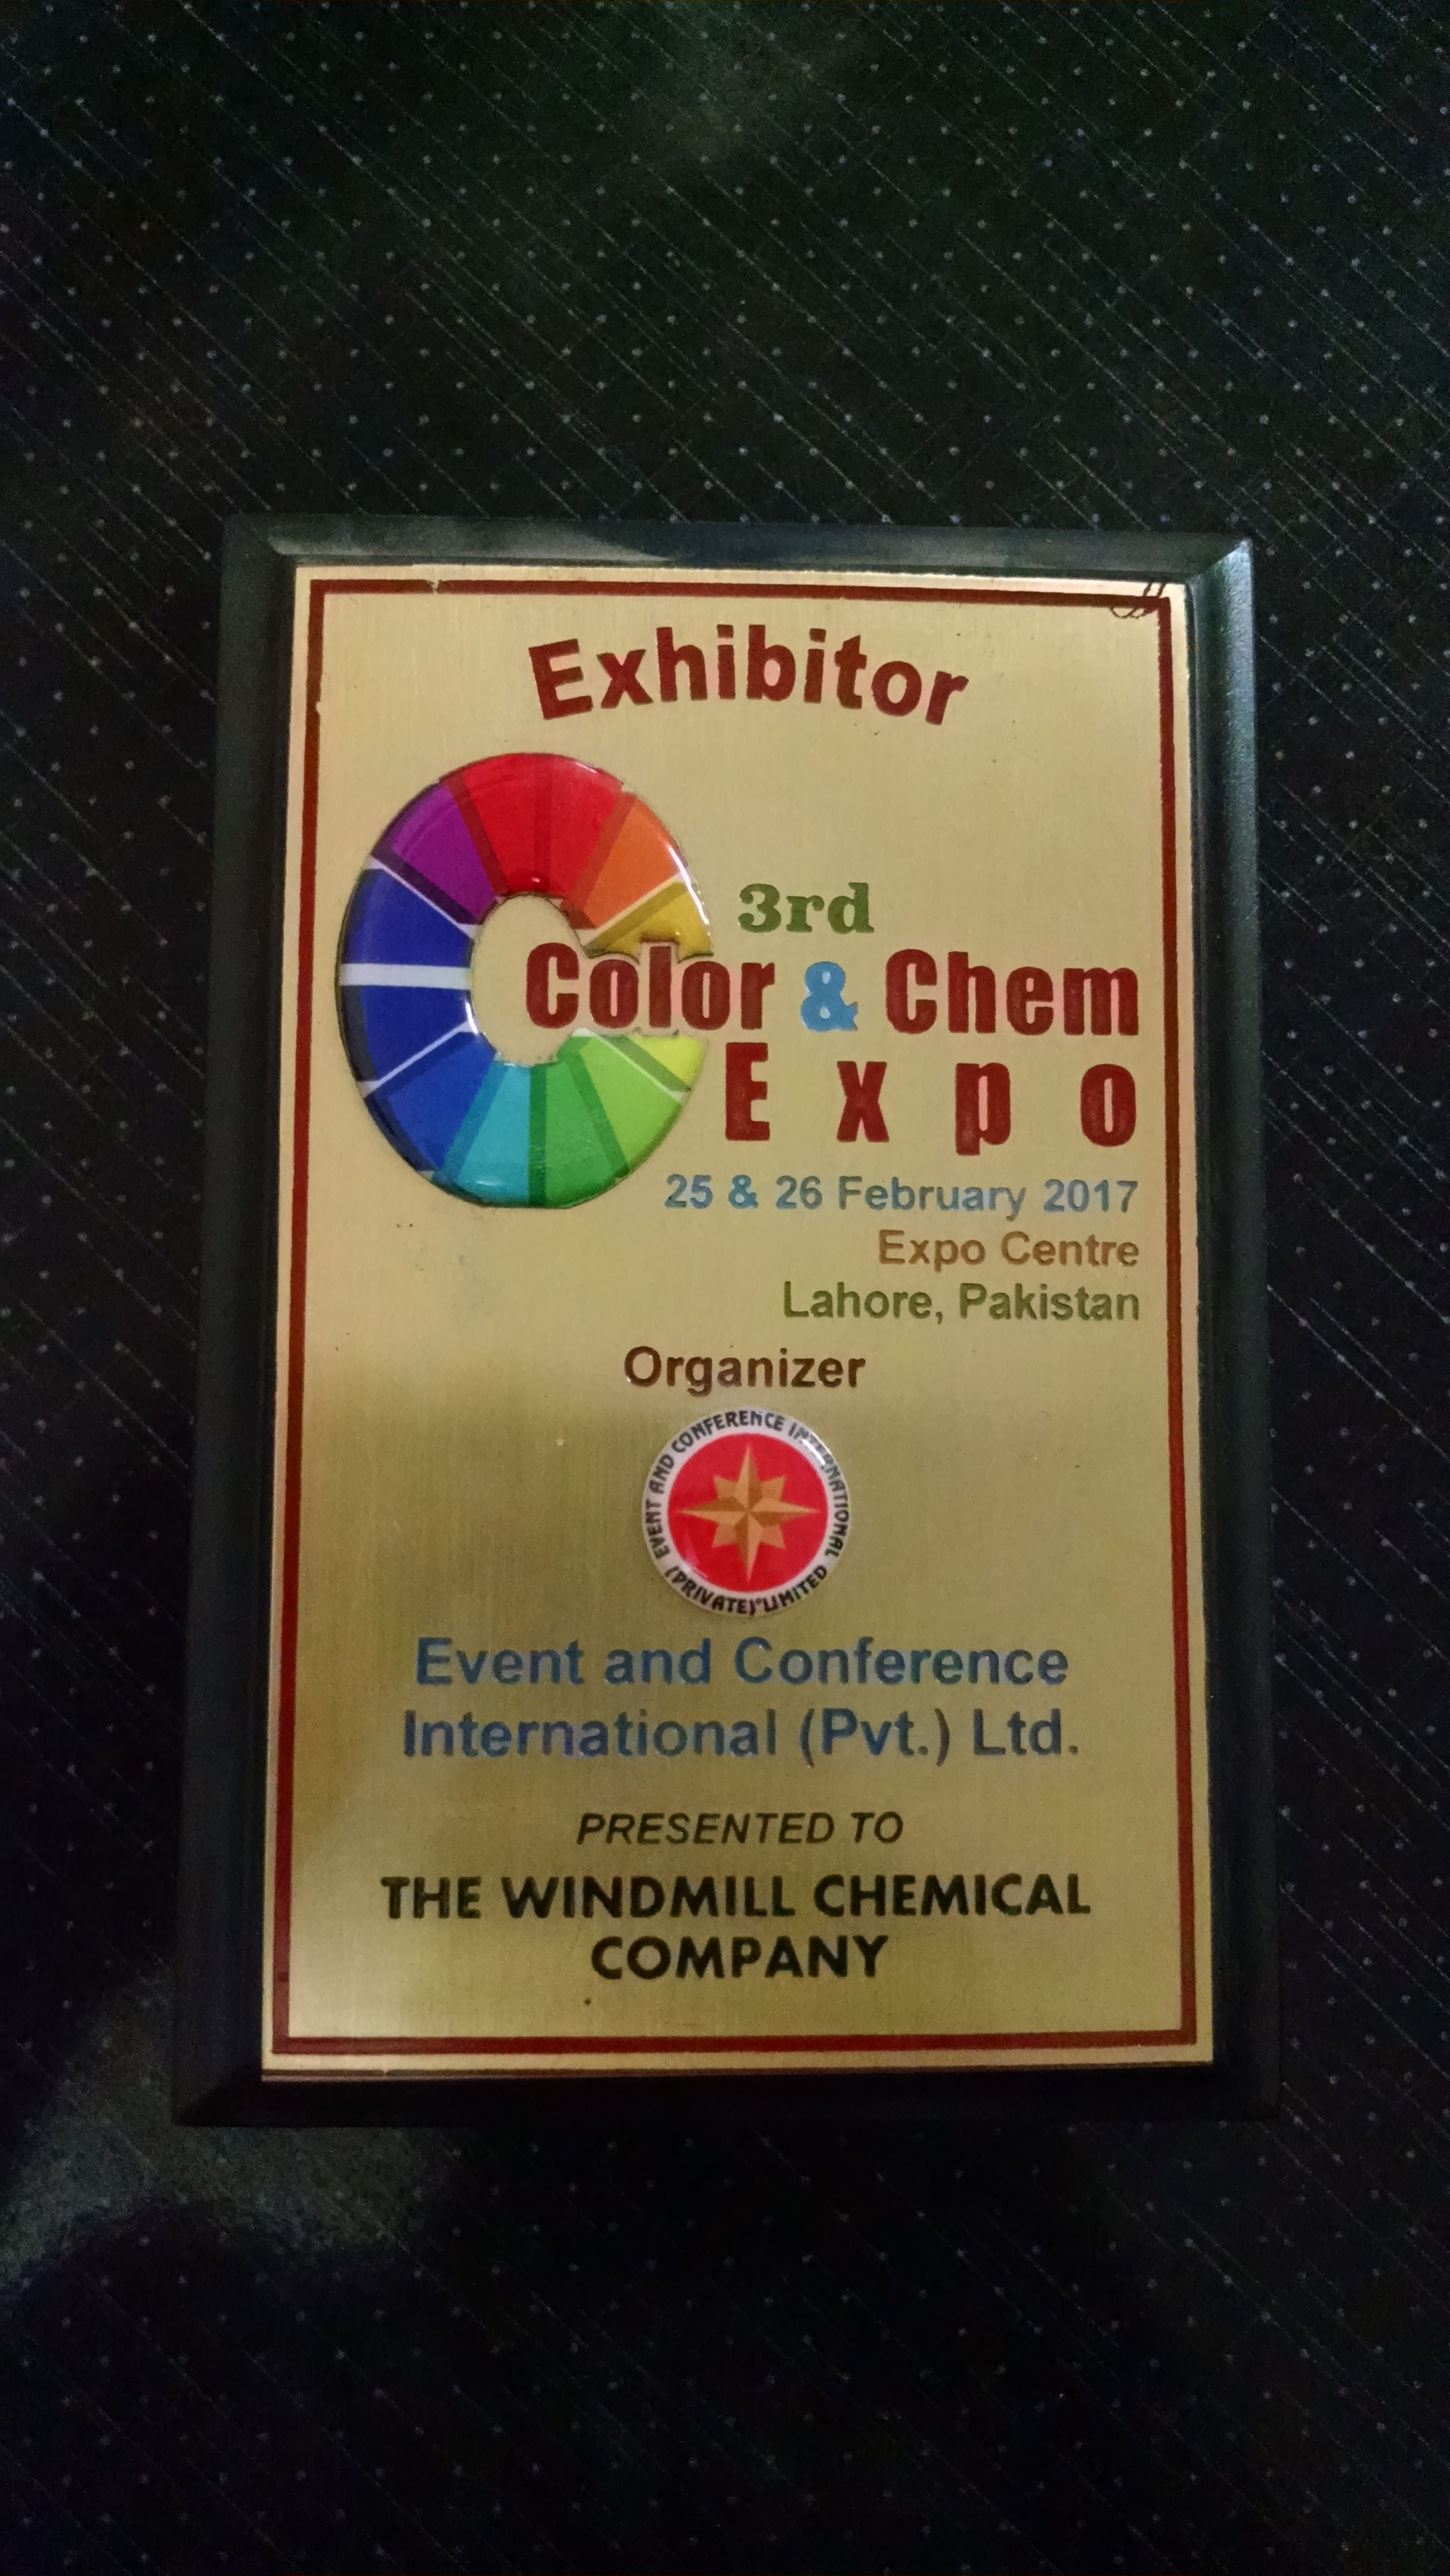 The Windmill Chemical